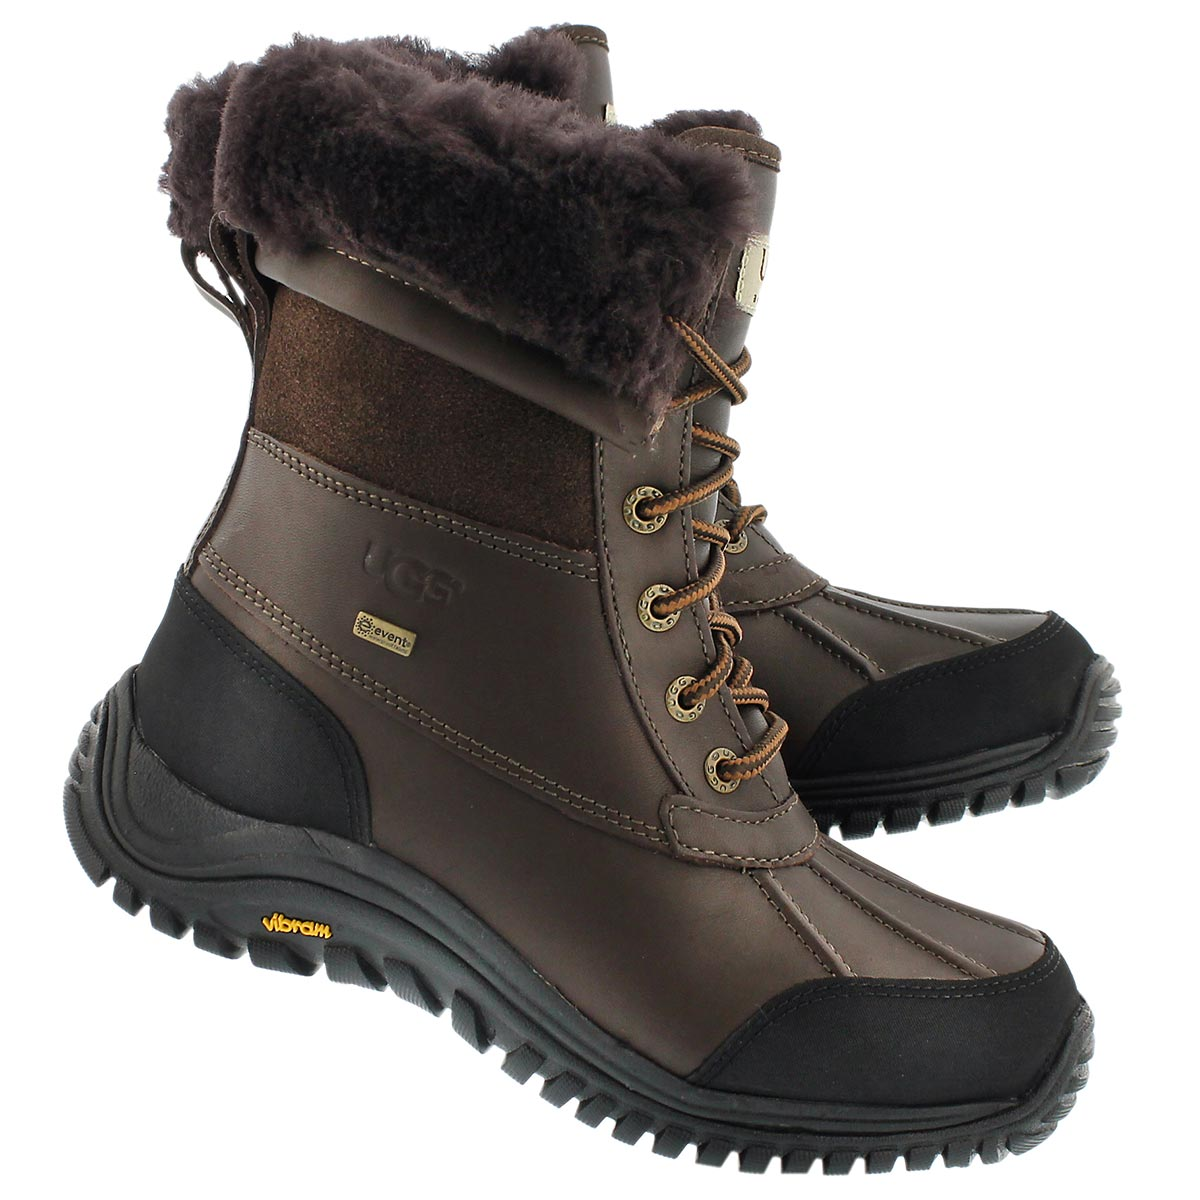 Lds Adirondack II obsidian winter boot